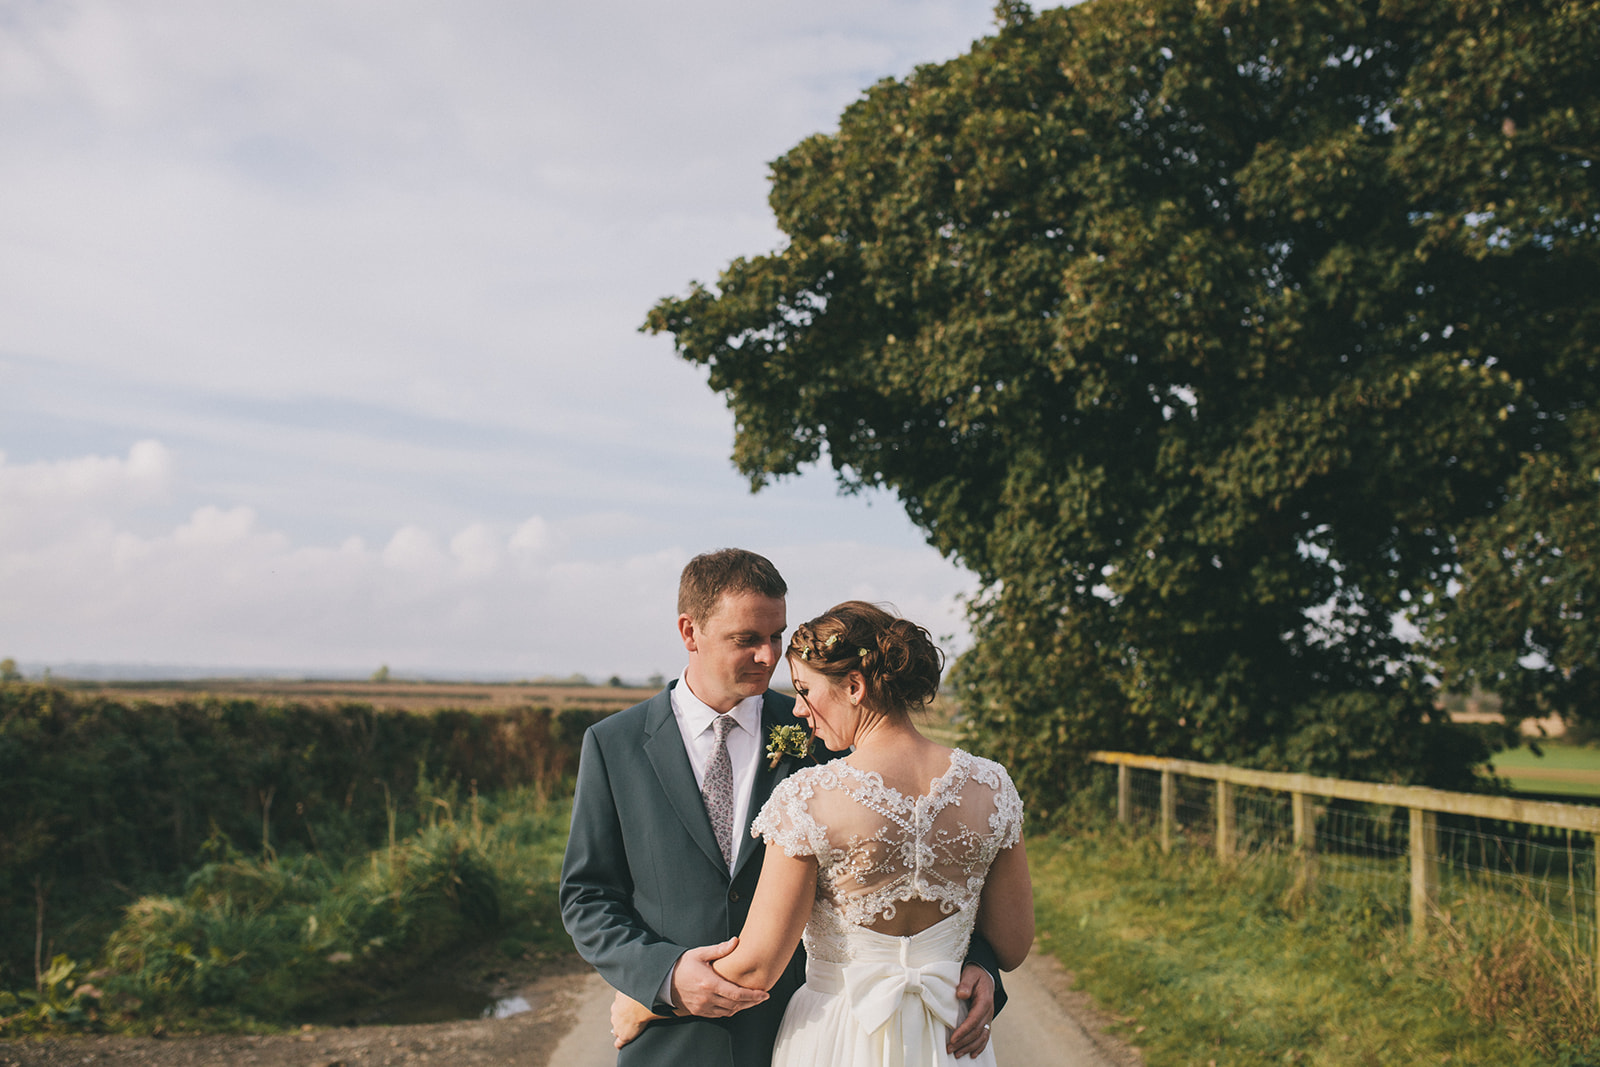 a bride and groom stand close, fields in the background. star inn at harome near helmsley, north yorkshire wedding photographer. stop motion wedding films uk.